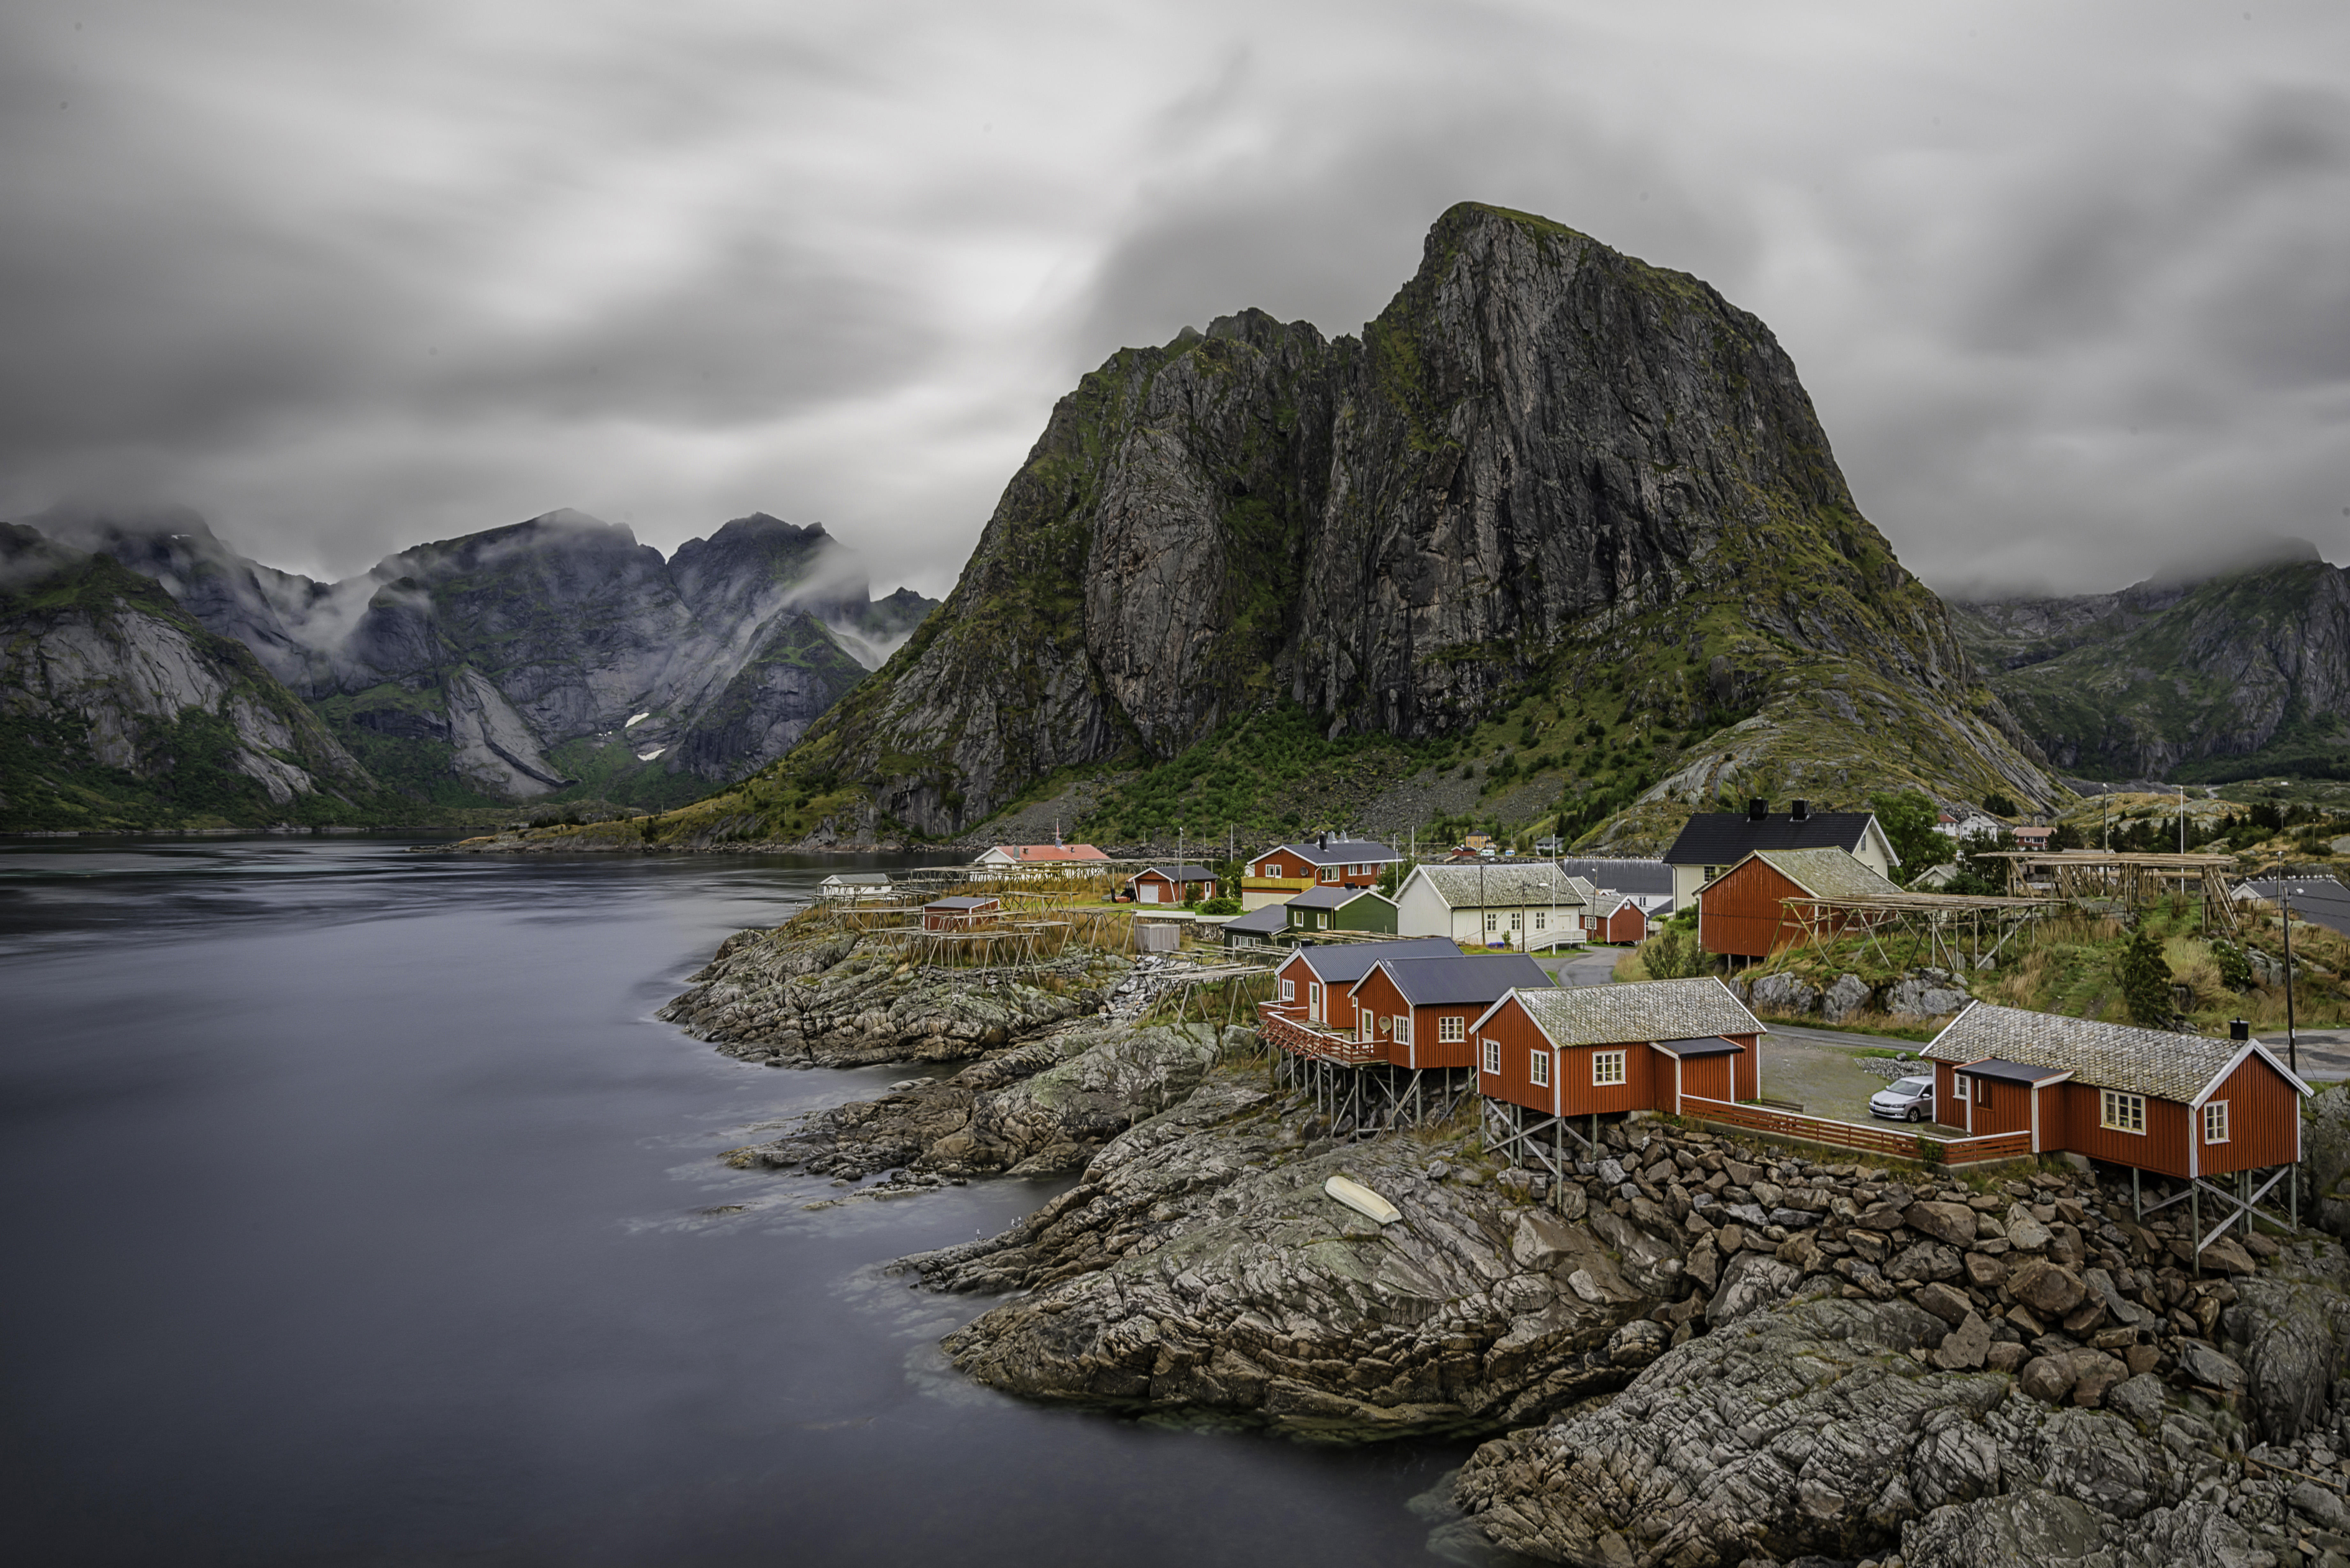 lofoten islands images - HD 7360×4912